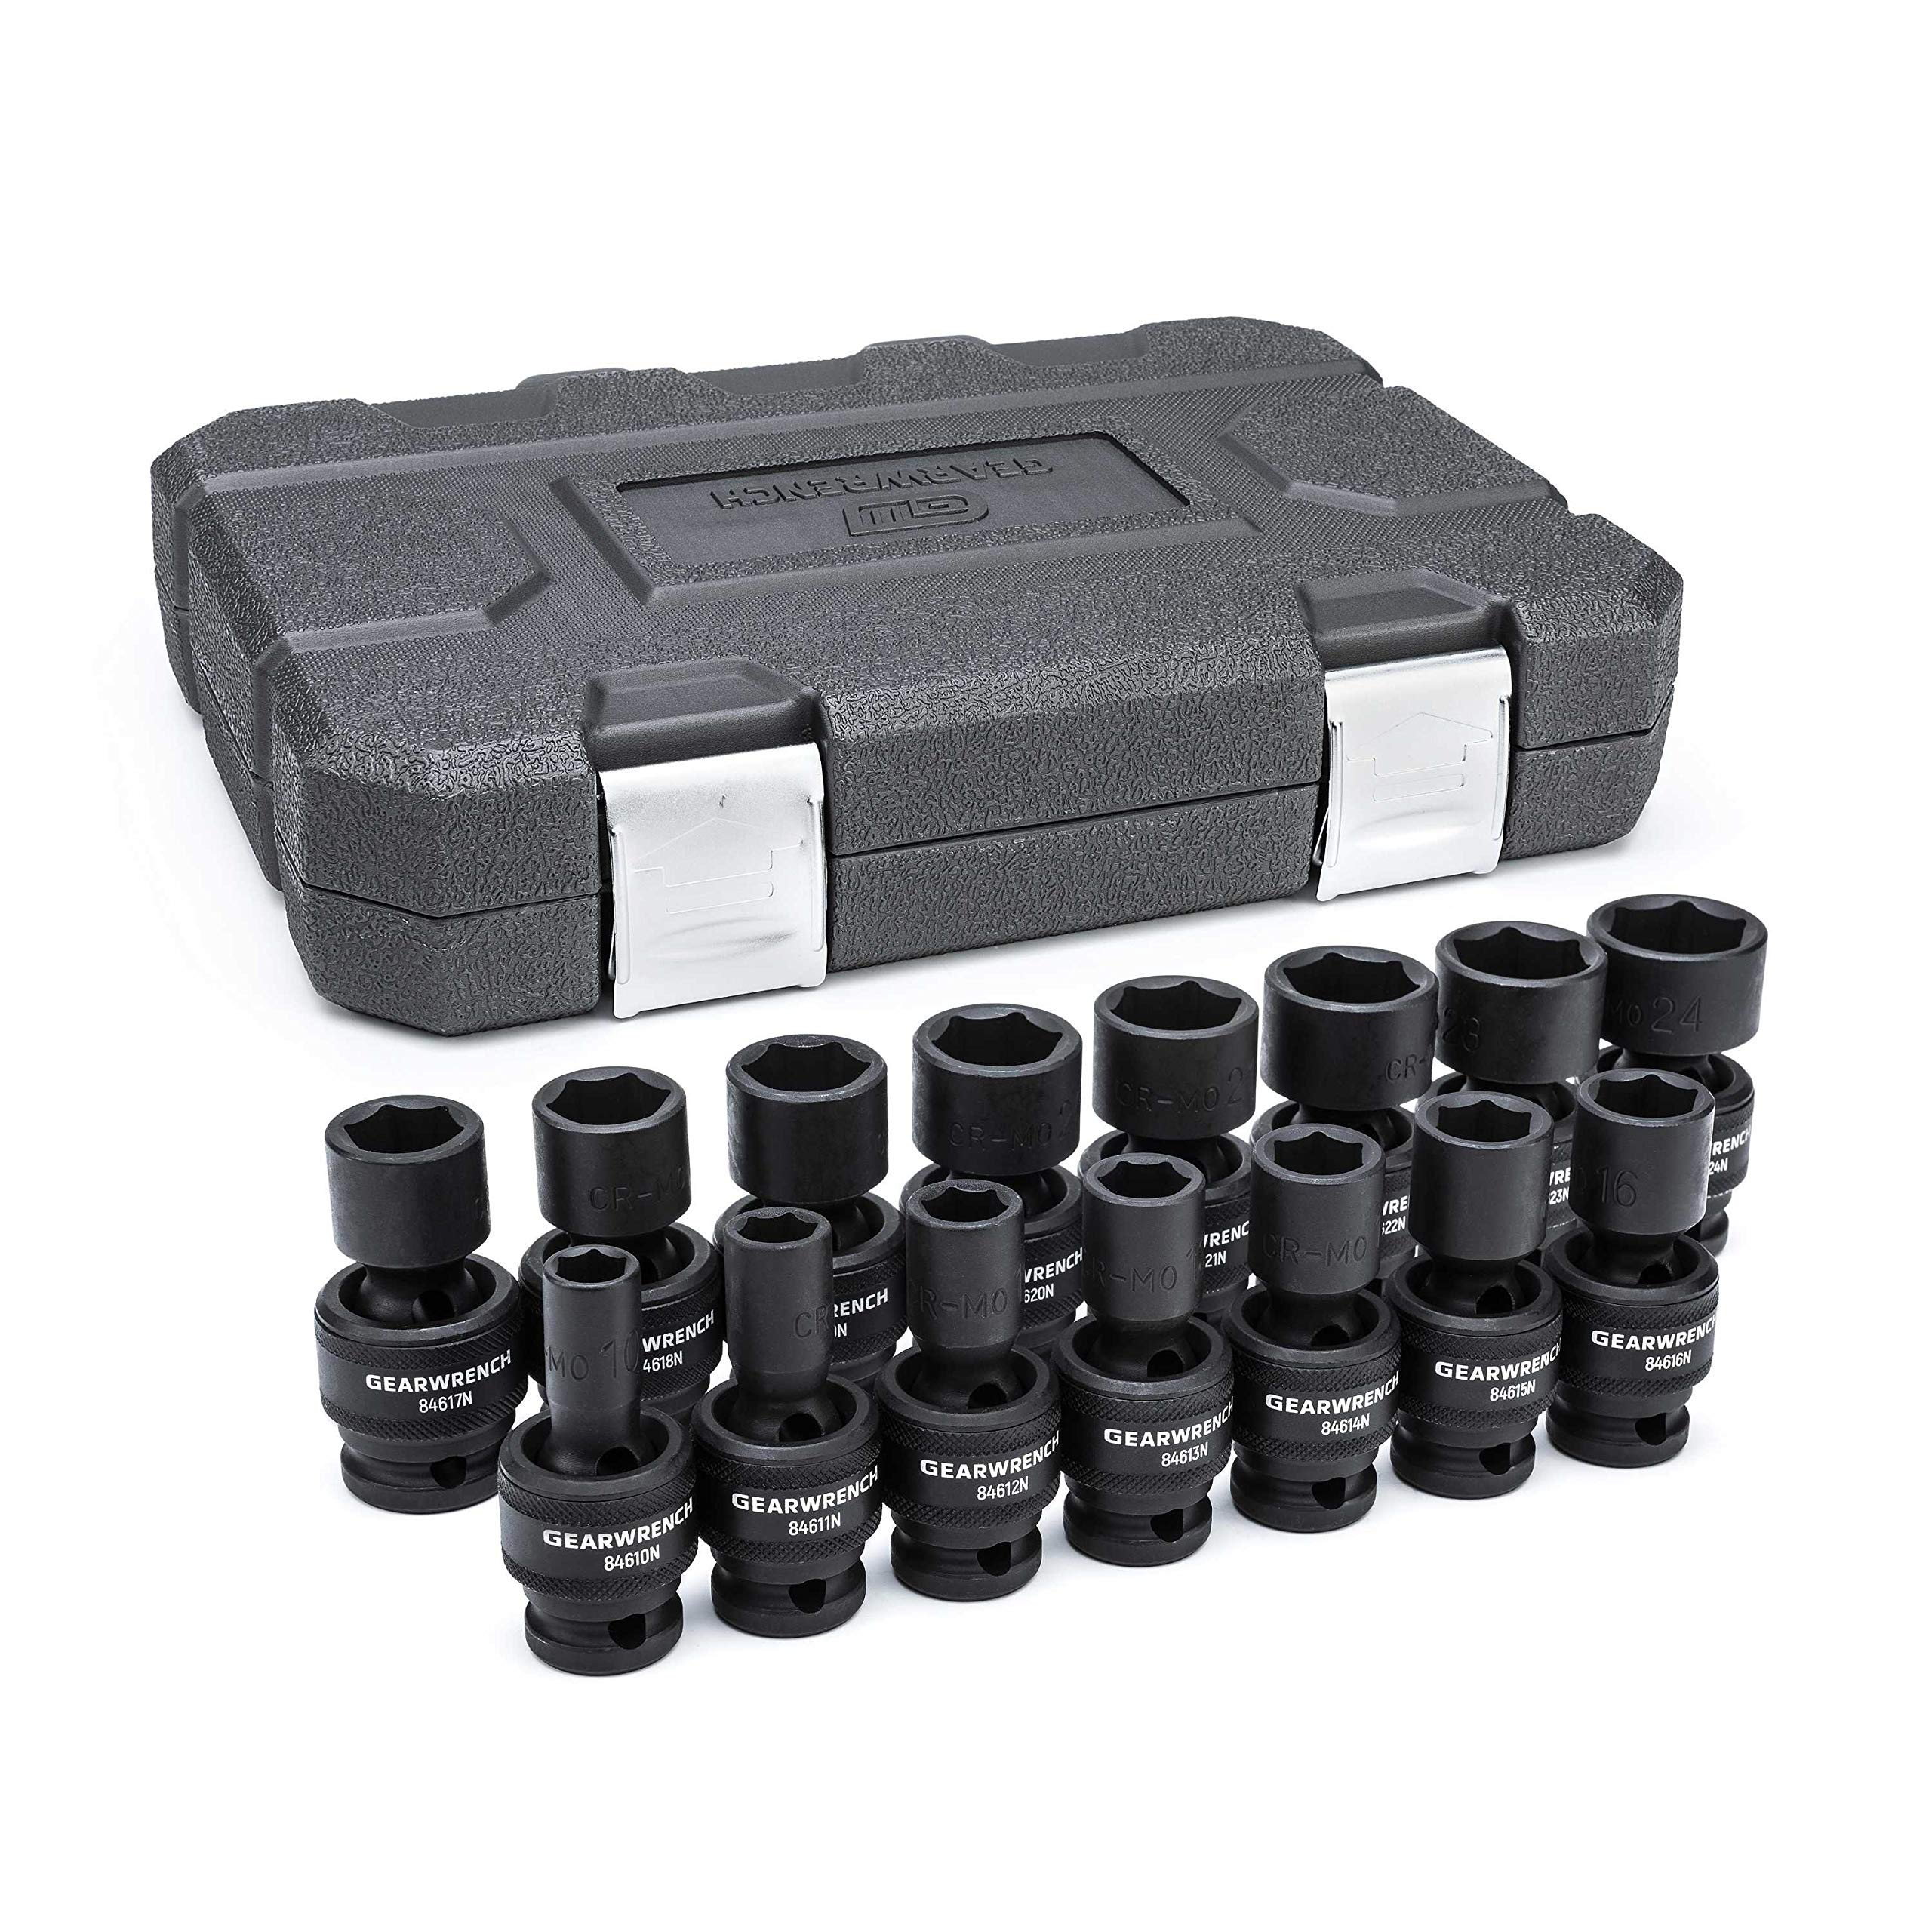 GearWrench 84939N 1/2-Inch 6 Point Metric Universal Impact Socket Set (15 Piece)